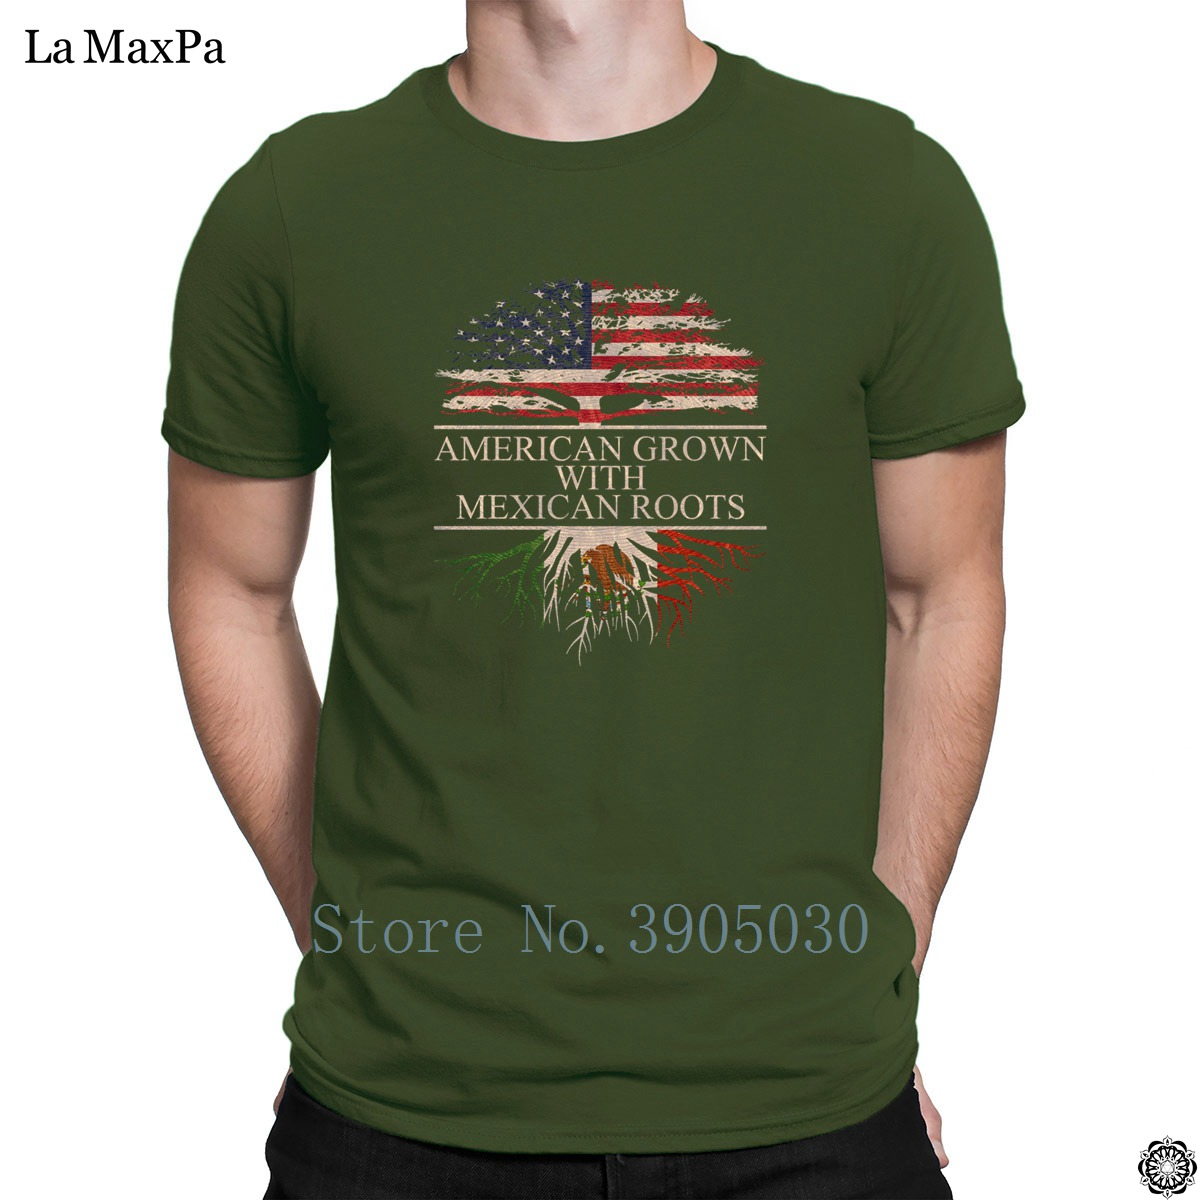 76ffca07b76 Unisex Letters T Shirt For Men Mexcian Roots With American Grown Tree T  Shirt Great Tshirt O Neck Best Men Tee Shirt Top Tee-in T-Shirts from Men s  Clothing ...